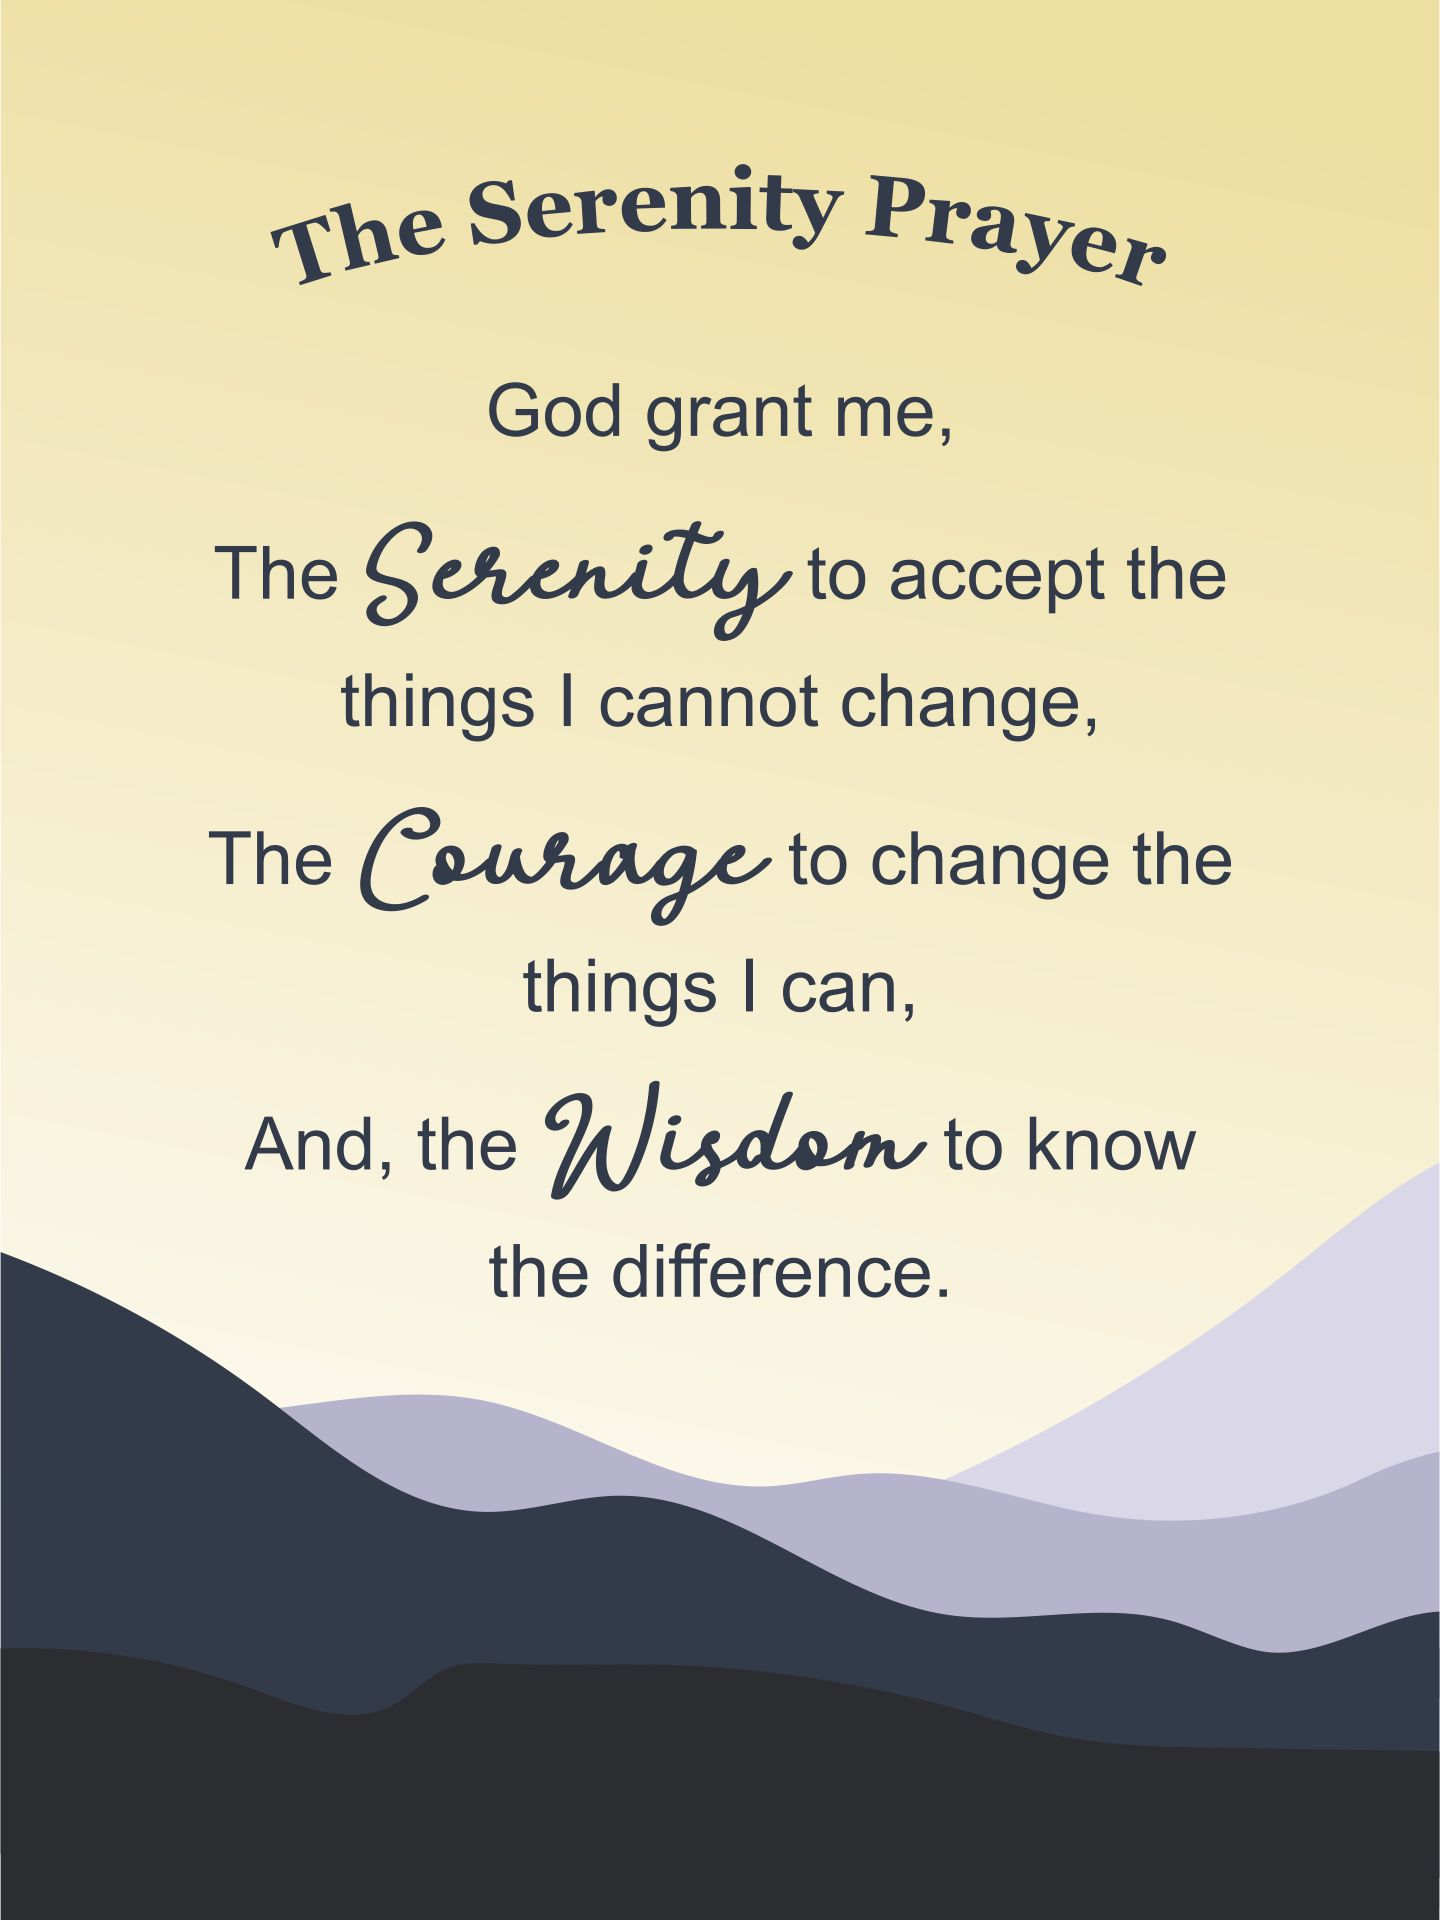 The Serenity Prayer In The Bible